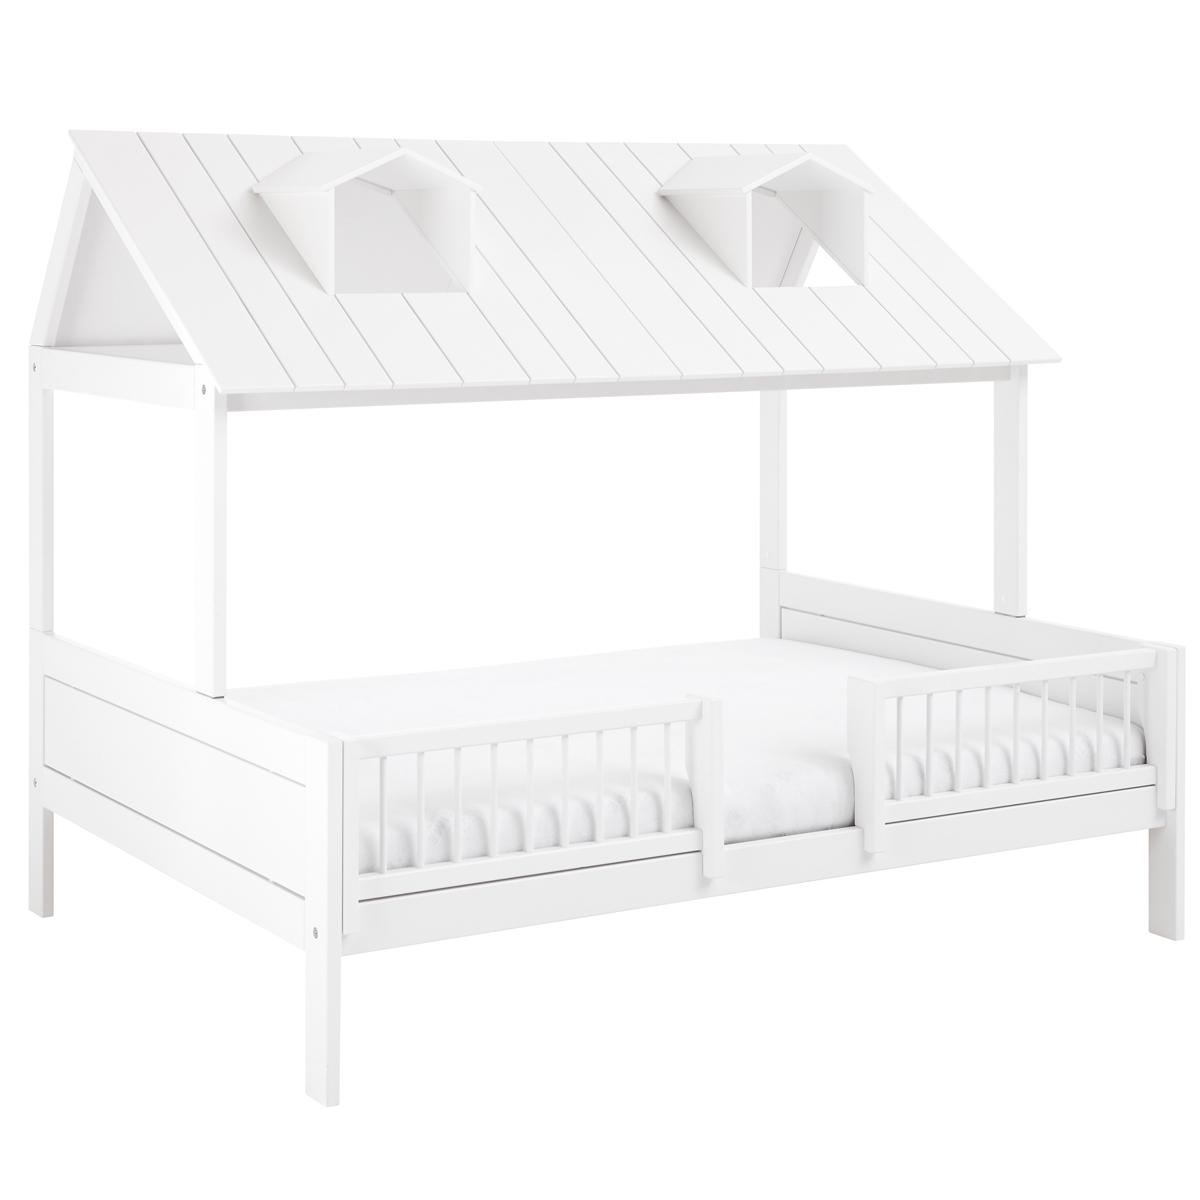 Cama 120x200cm + somier de luxe BEACH HOUSE Lifetime blanco